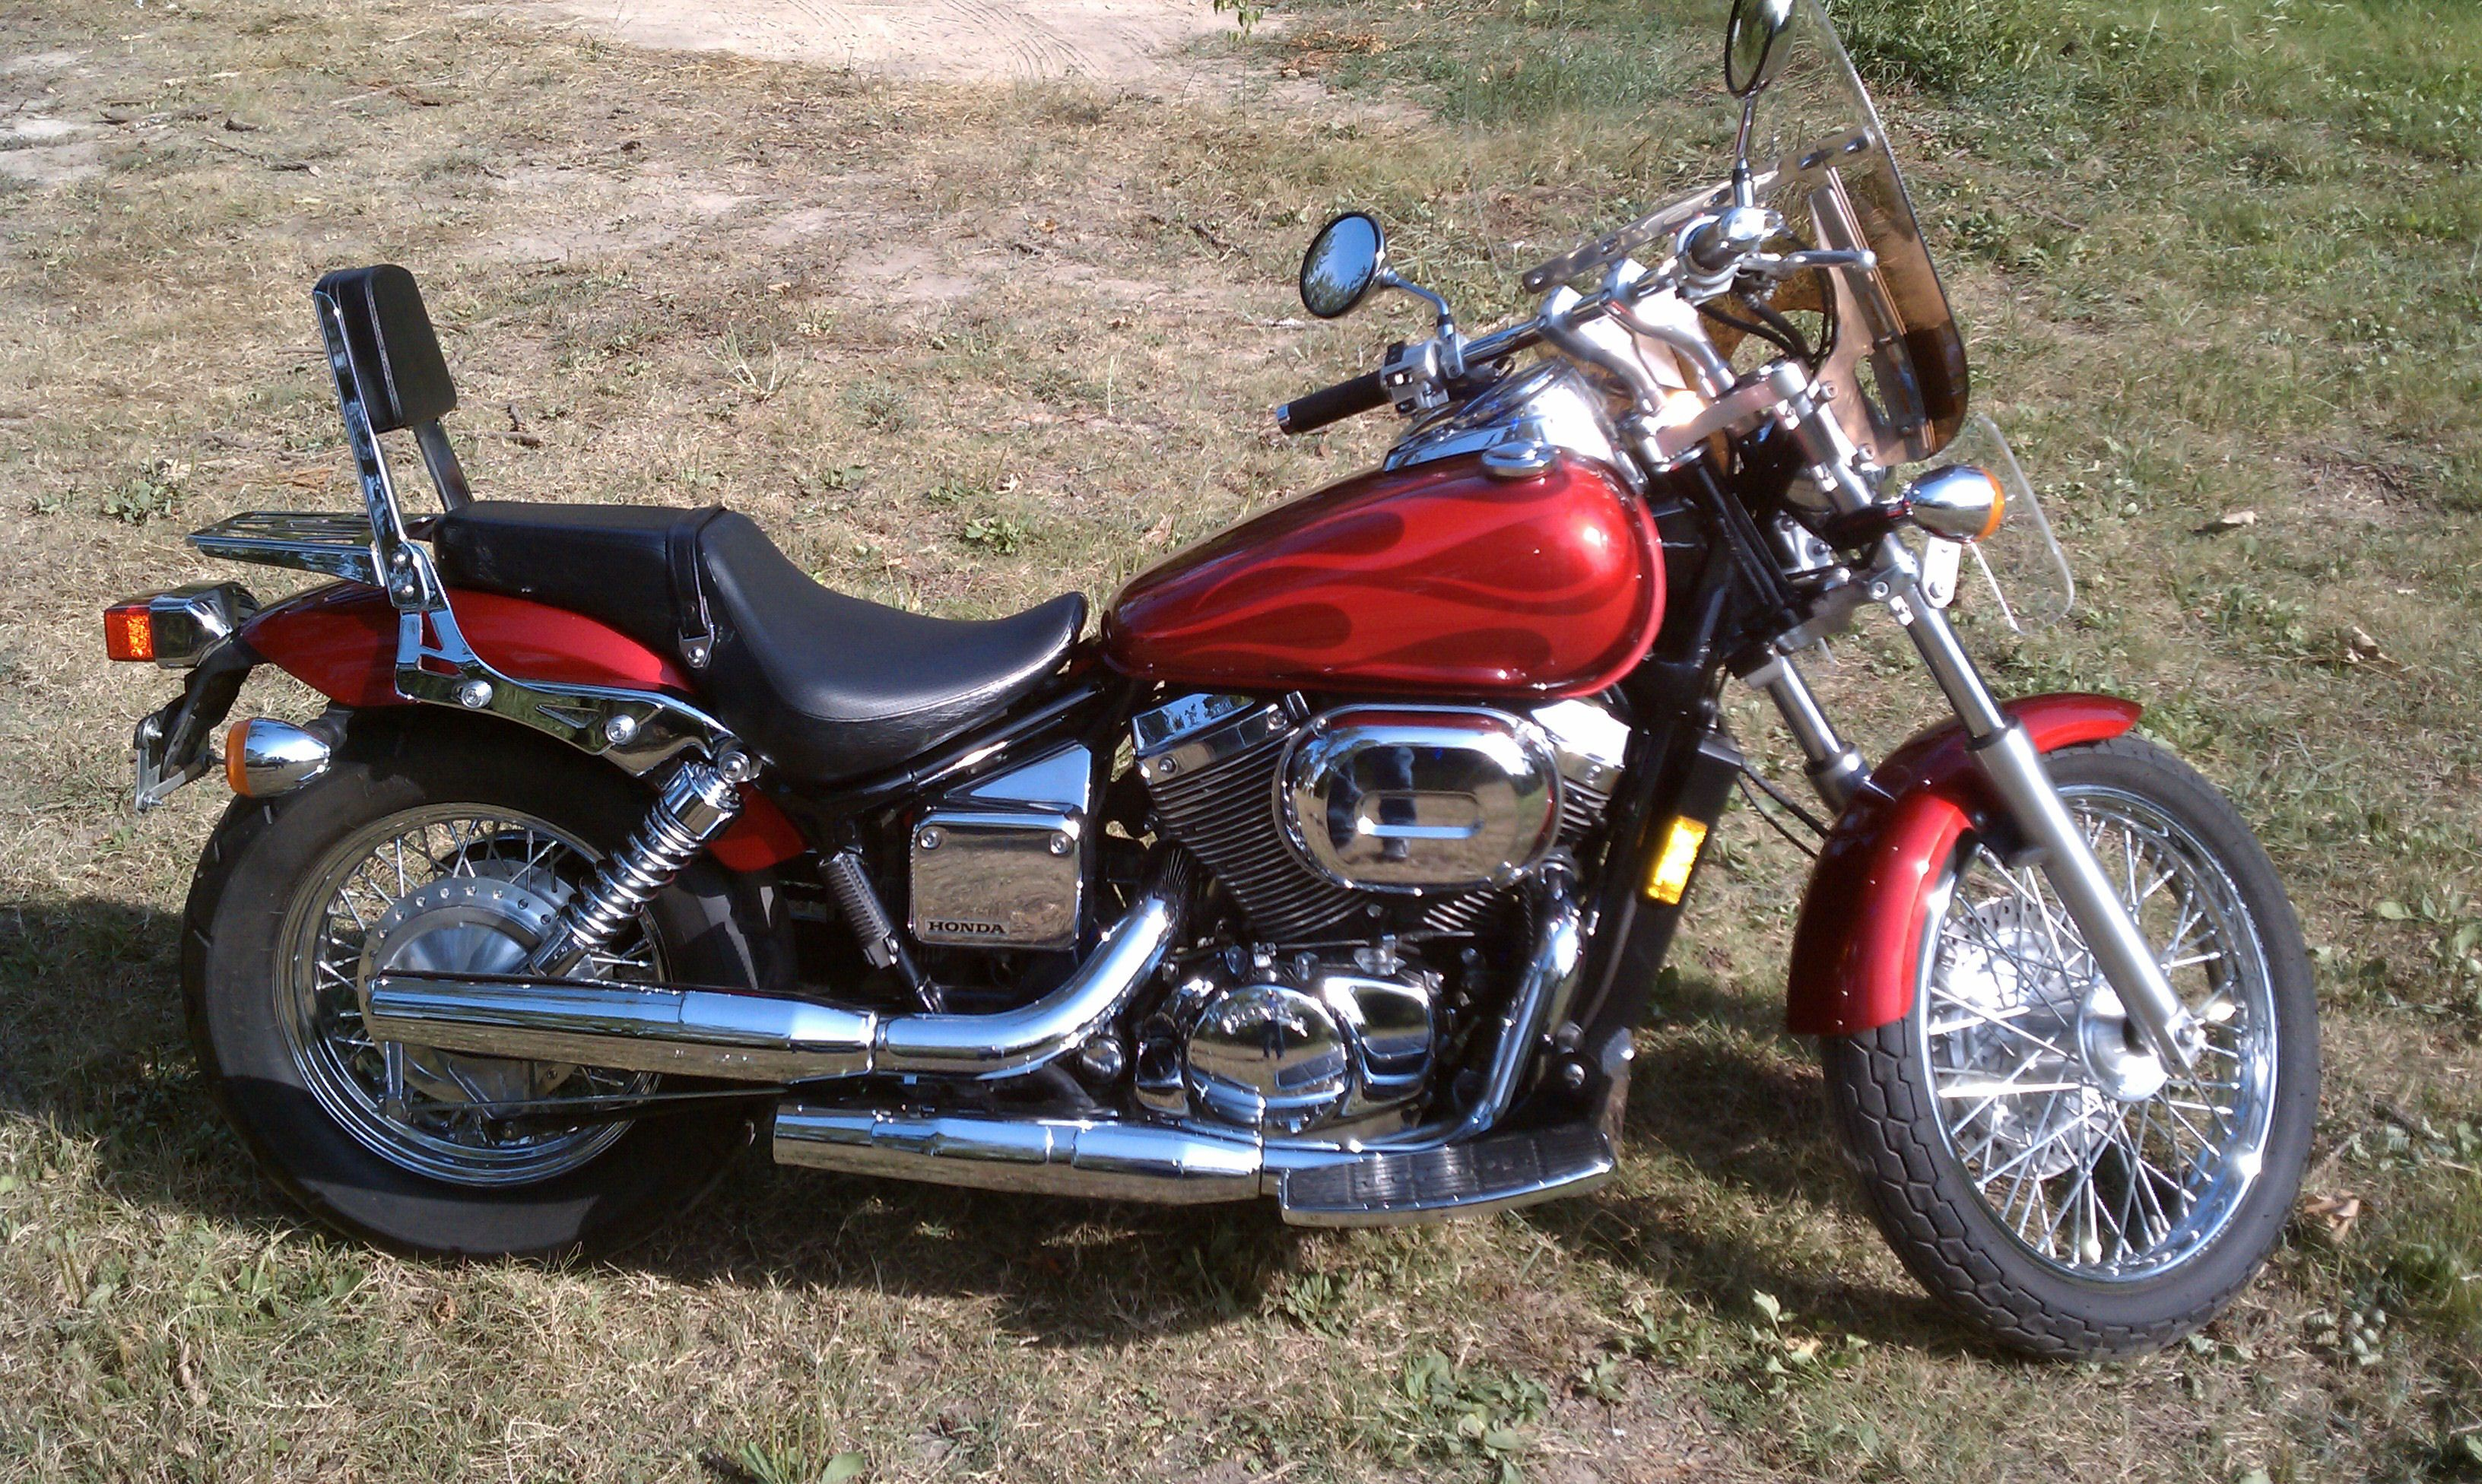 Superior Honda Shadow Craigslist #1: 2003 Honda 750 Shadow Spirit For Sale $4,500 Http://chattanooga.craigslist.